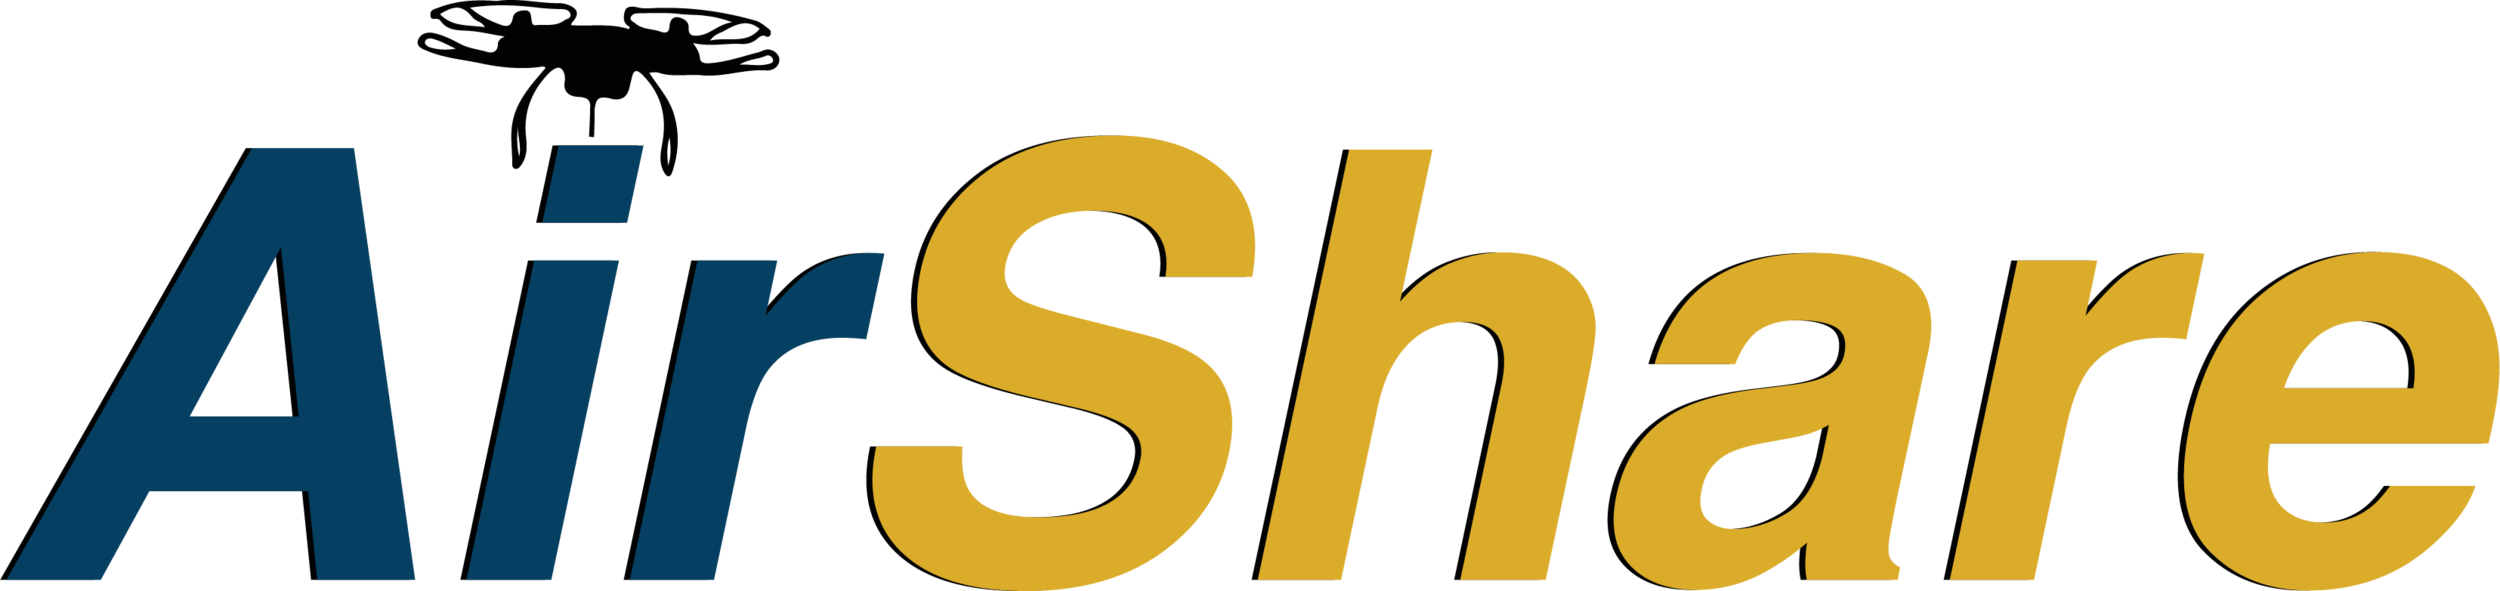 AirShare-full color.png